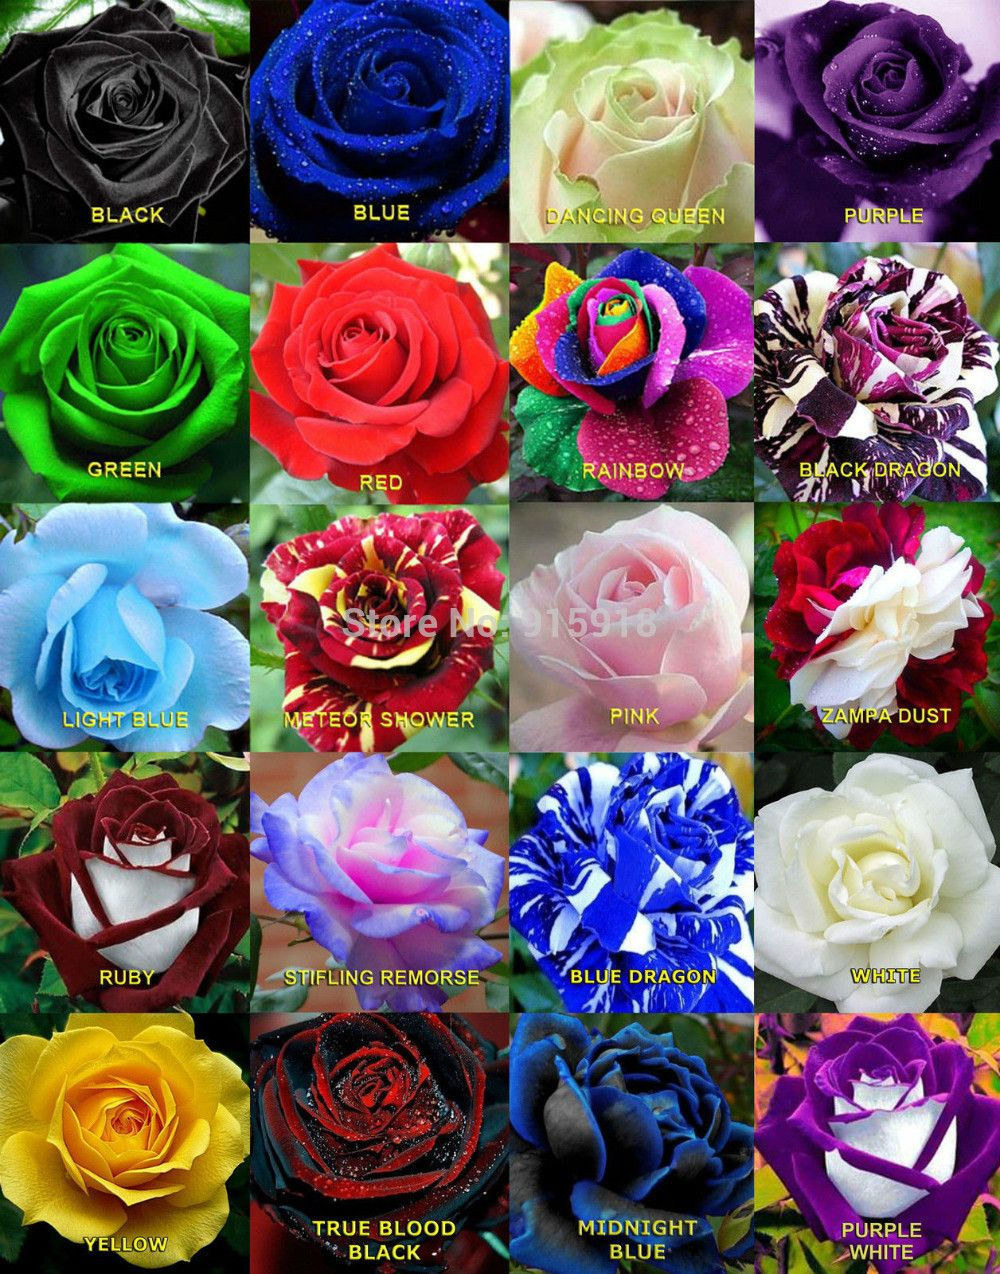 Multycolorroses flower seeds bonsai 50 x rare multi colors cheap rainbow rose buy quality seeds bonsai directly from china garden plants suppliers flower seeds bonsai 50 x rare multi colors rainbow rose seeds izmirmasajfo